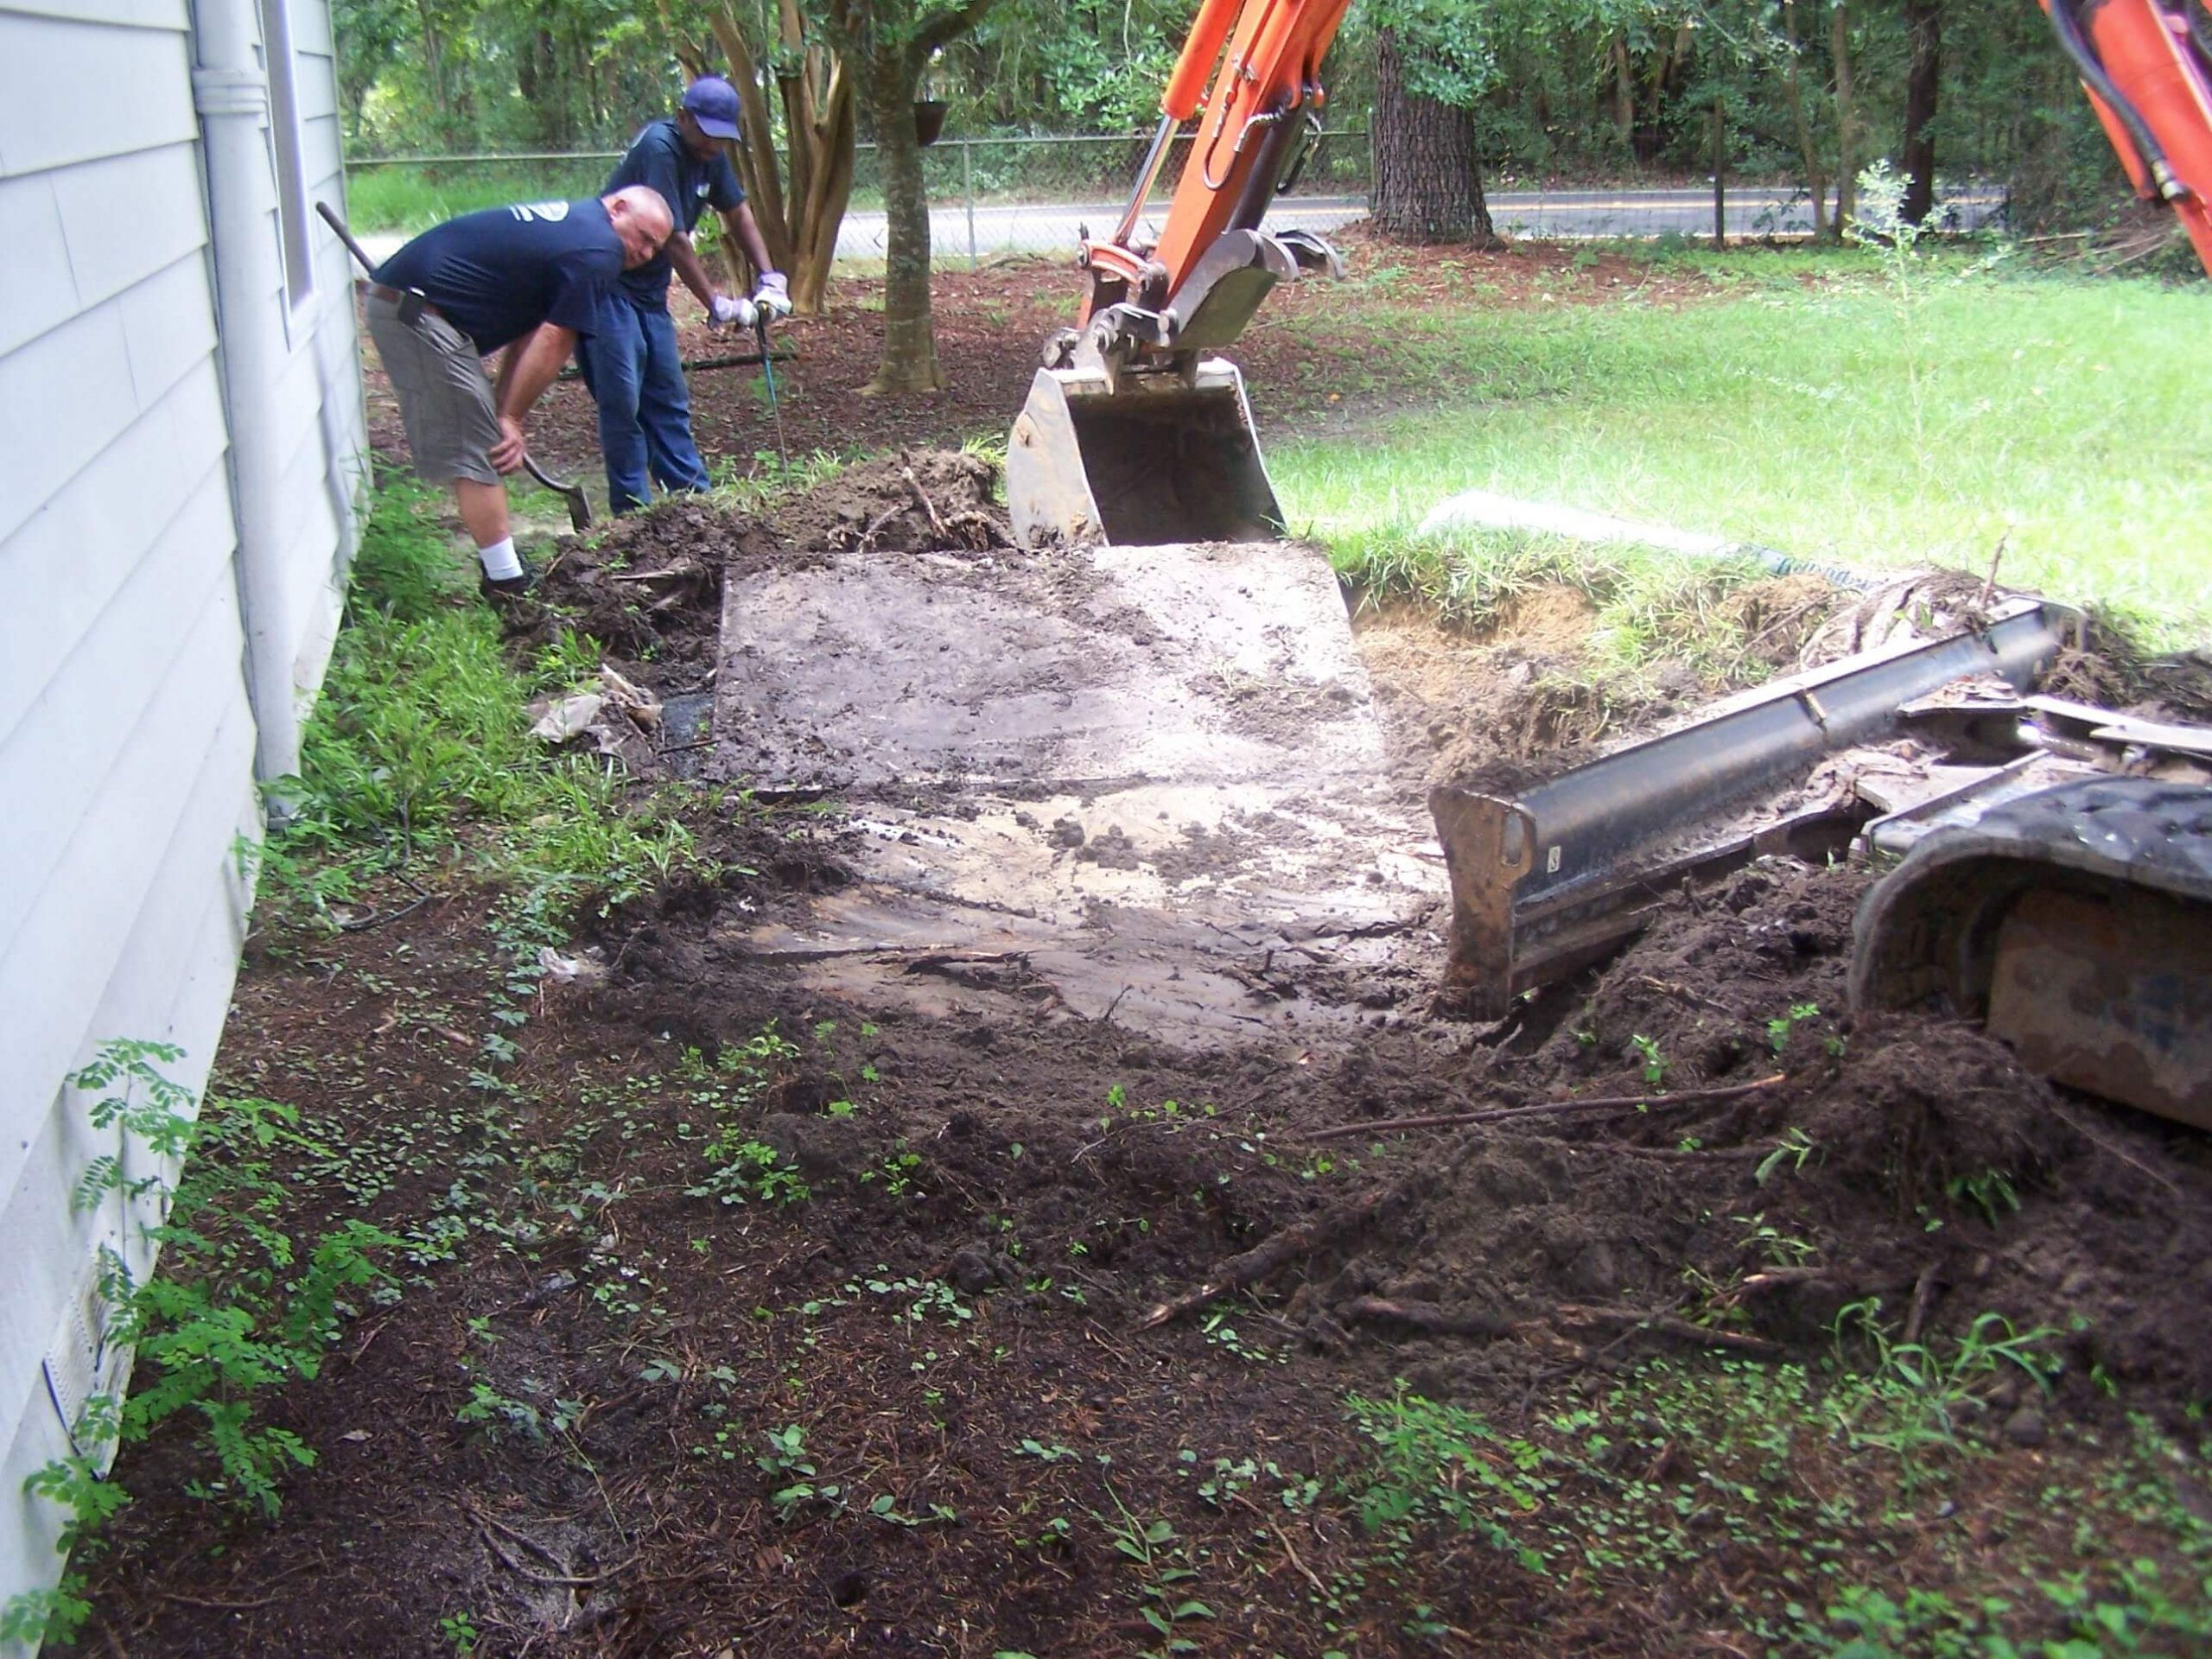 Fort Worth TX Septic Tank Pumping, Installation, & Repairs Home Page Image-We offer Septic Service & Repairs, Septic Tank Installations, Septic Tank Cleaning, Commercial, Septic System, Drain Cleaning, Line Snaking, Portable Toilet, Grease Trap Pumping & Cleaning, Septic Tank Pumping, Sewage Pump, Sewer Line Repair, Septic Tank Replacement, Septic Maintenance, Sewer Line Replacement, Porta Potty Rentals, and more.